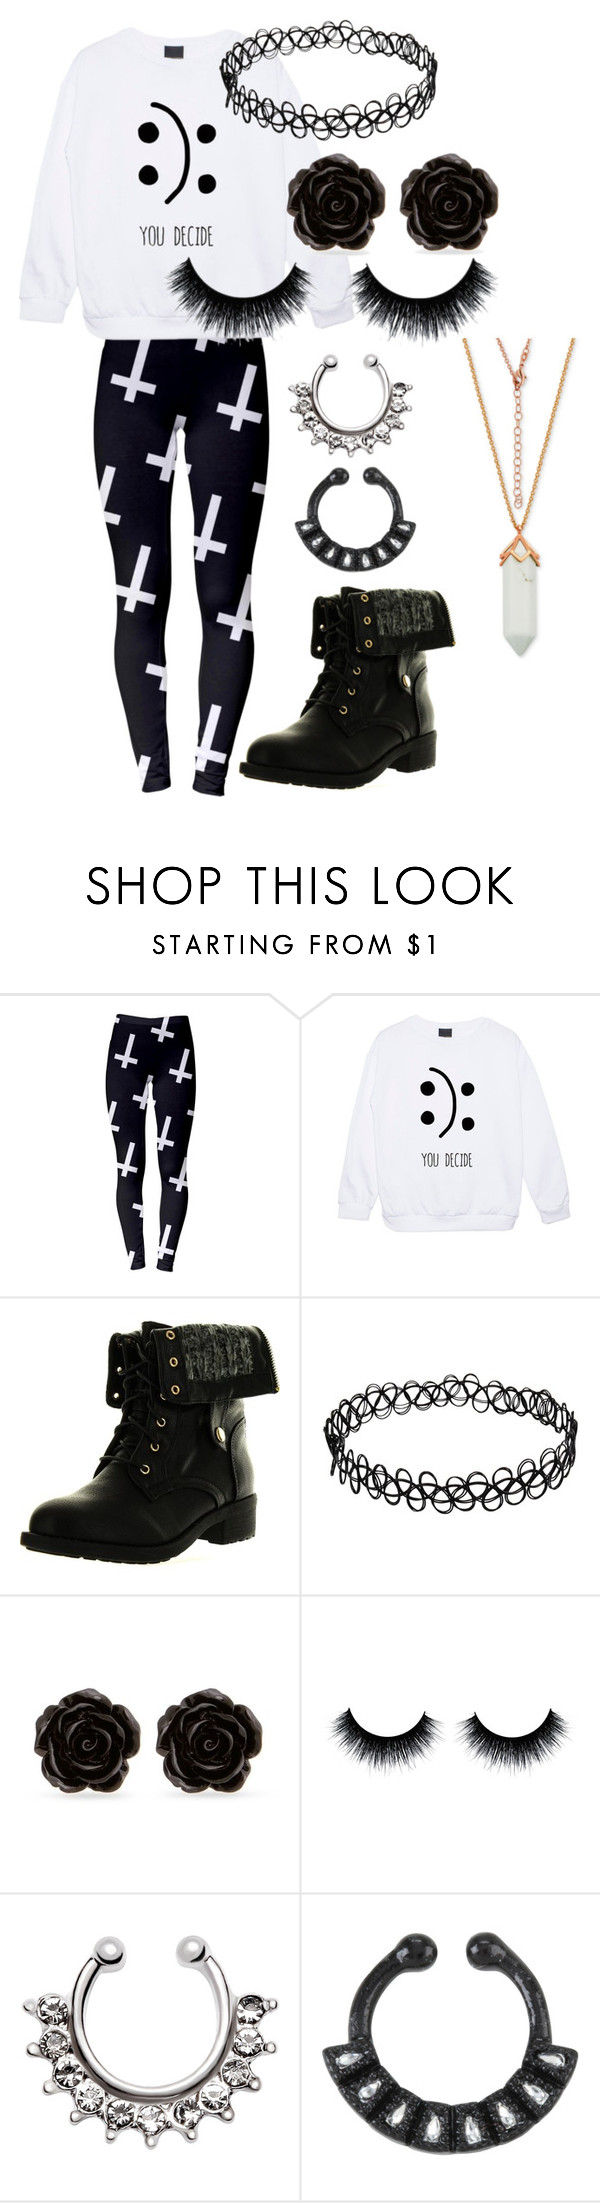 """Black and White"" by toxicshadows on Polyvore featuring Refresh and Erica Lyons"